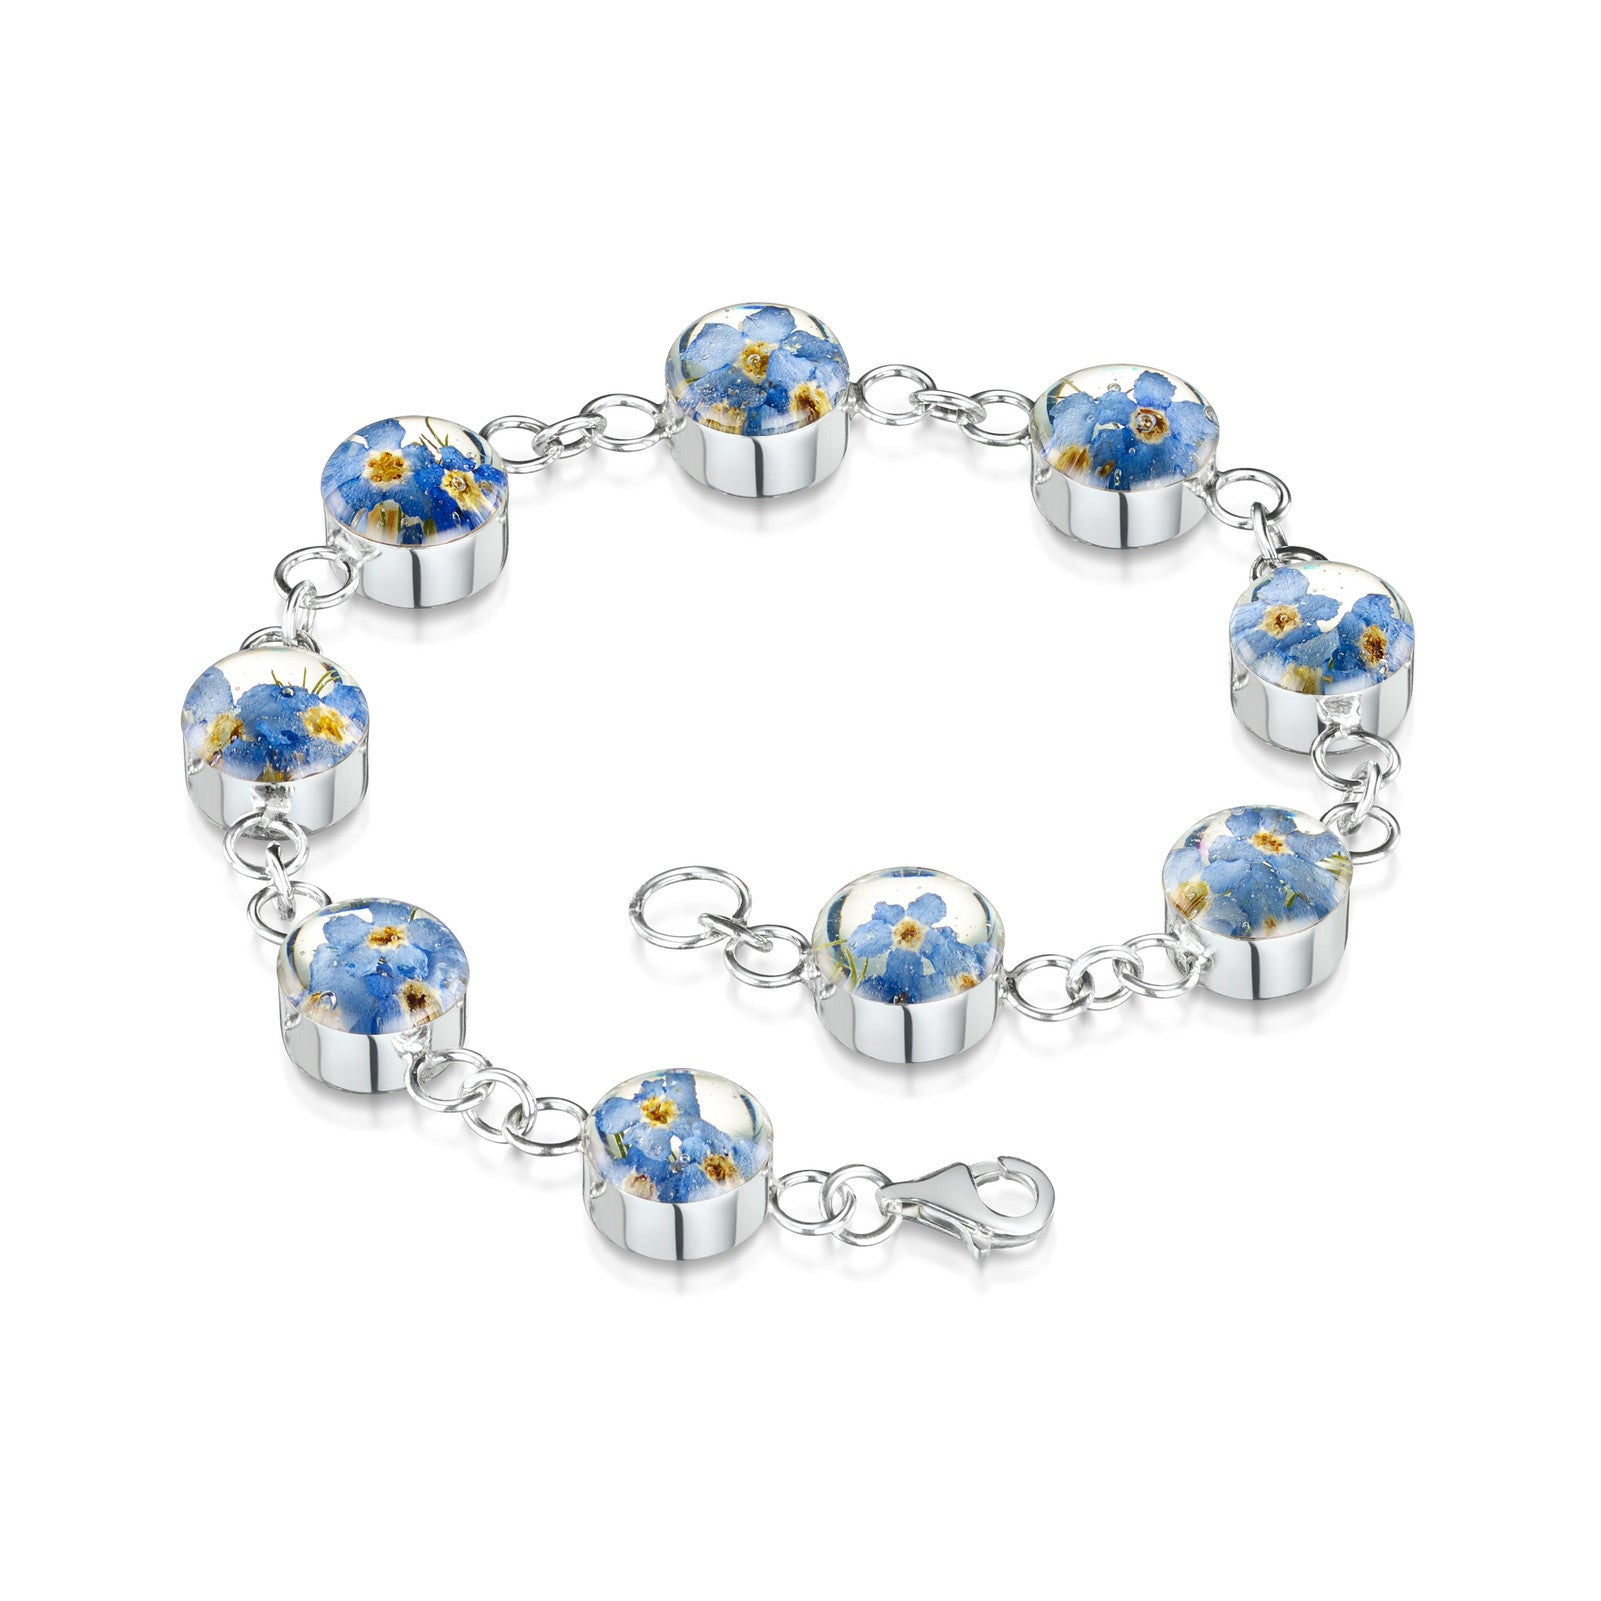 Silver bracelet - forget me not - round